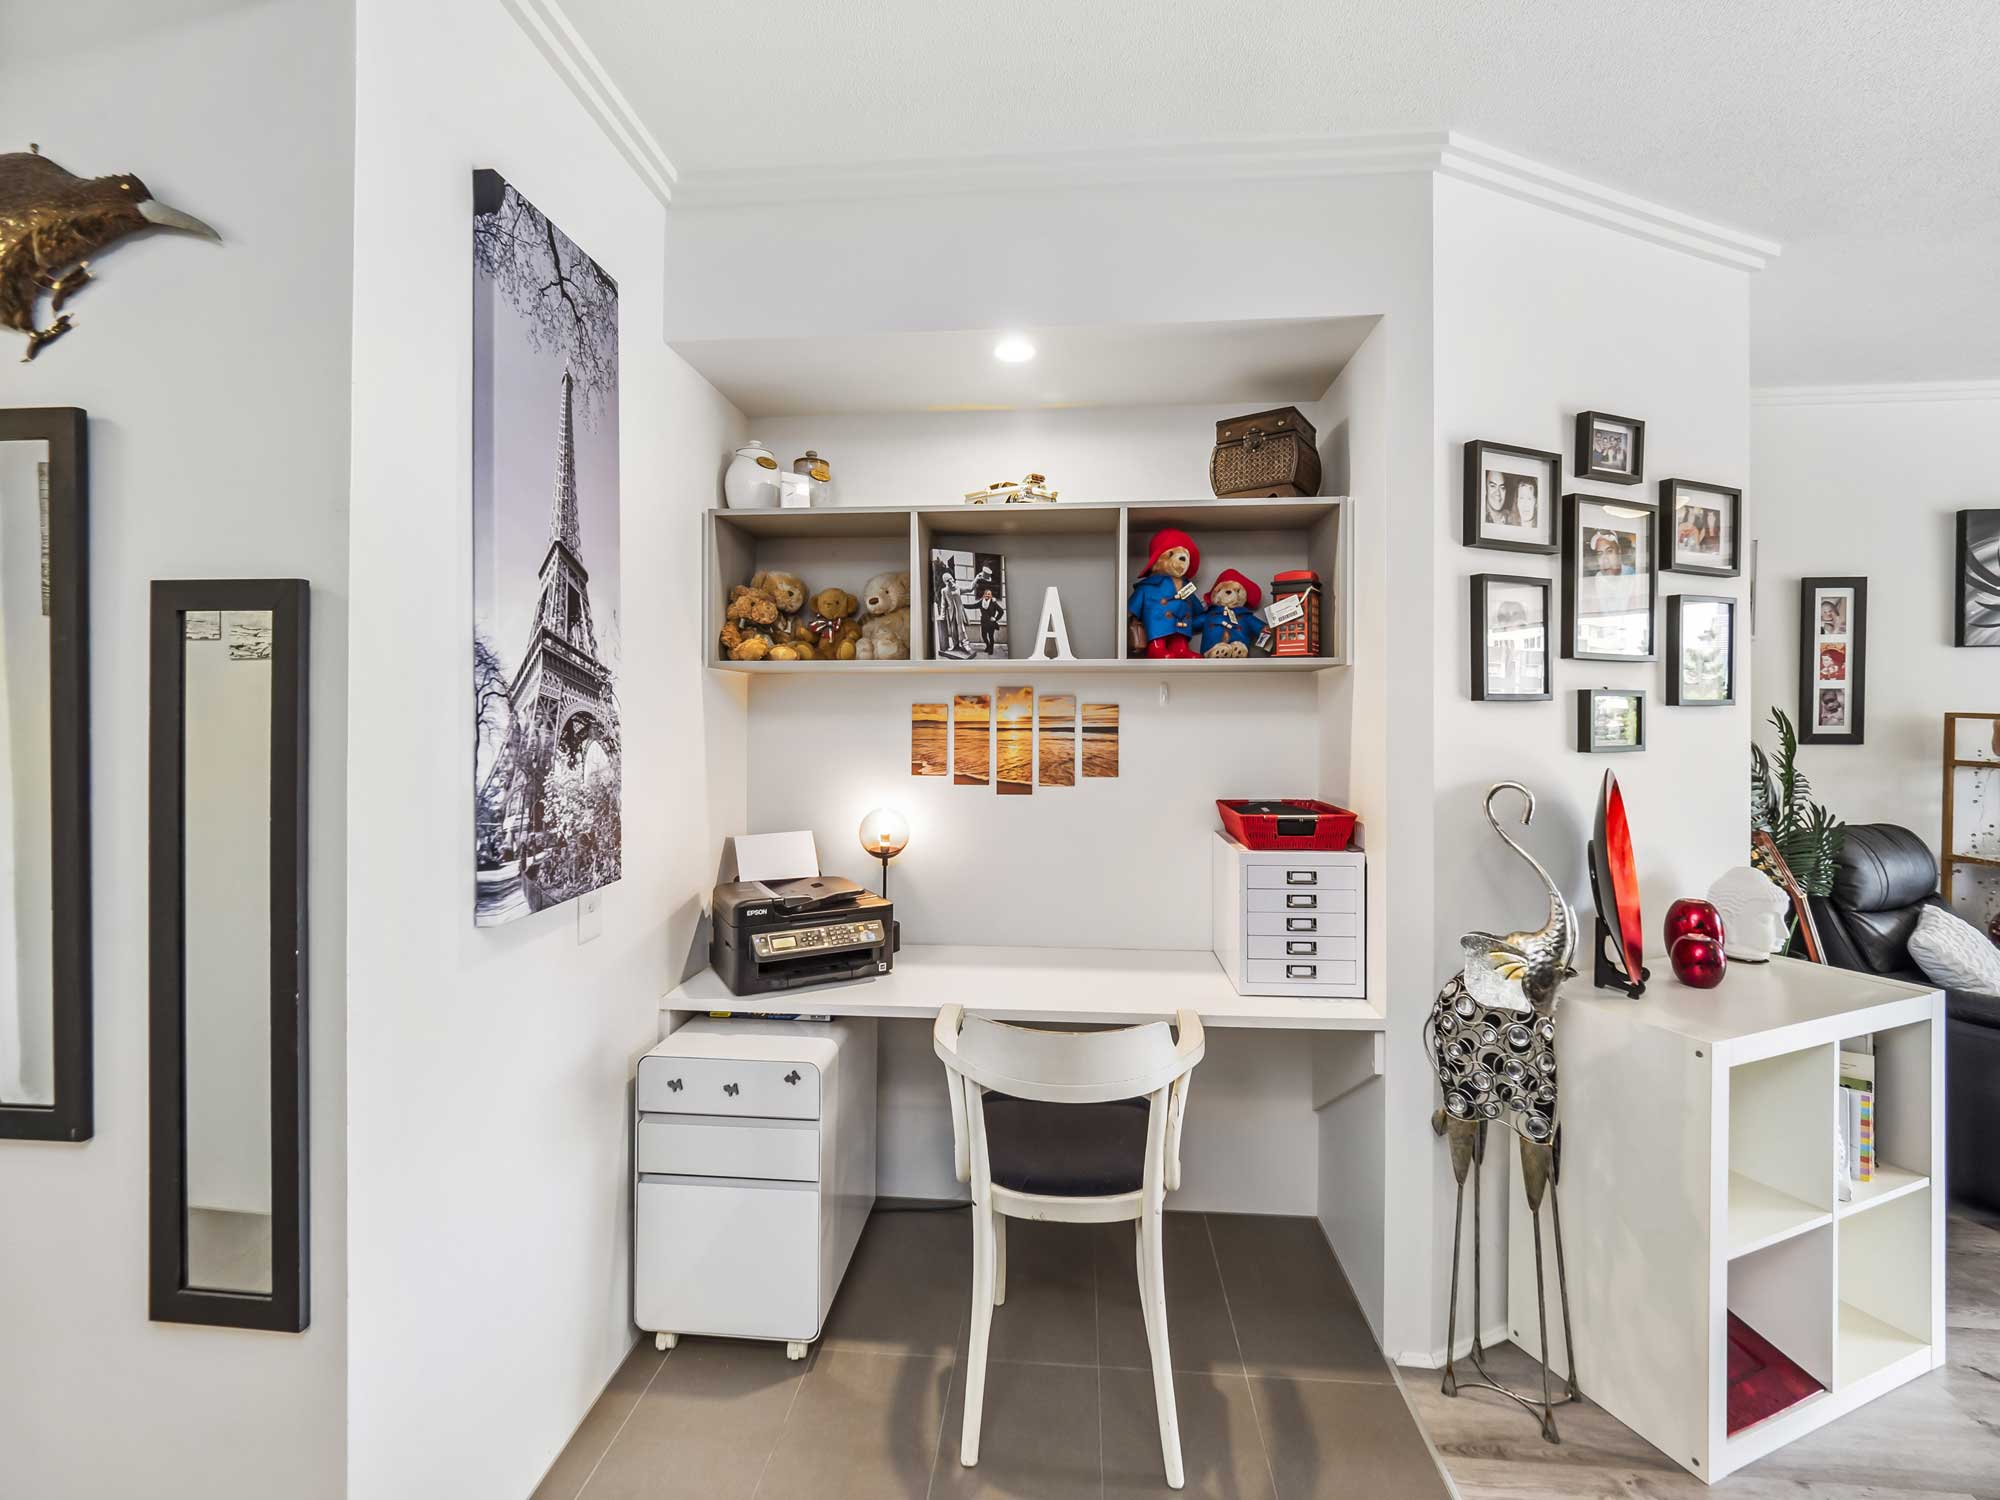 Real estate photography of Kangaroo Point apartment for sale - the study nook